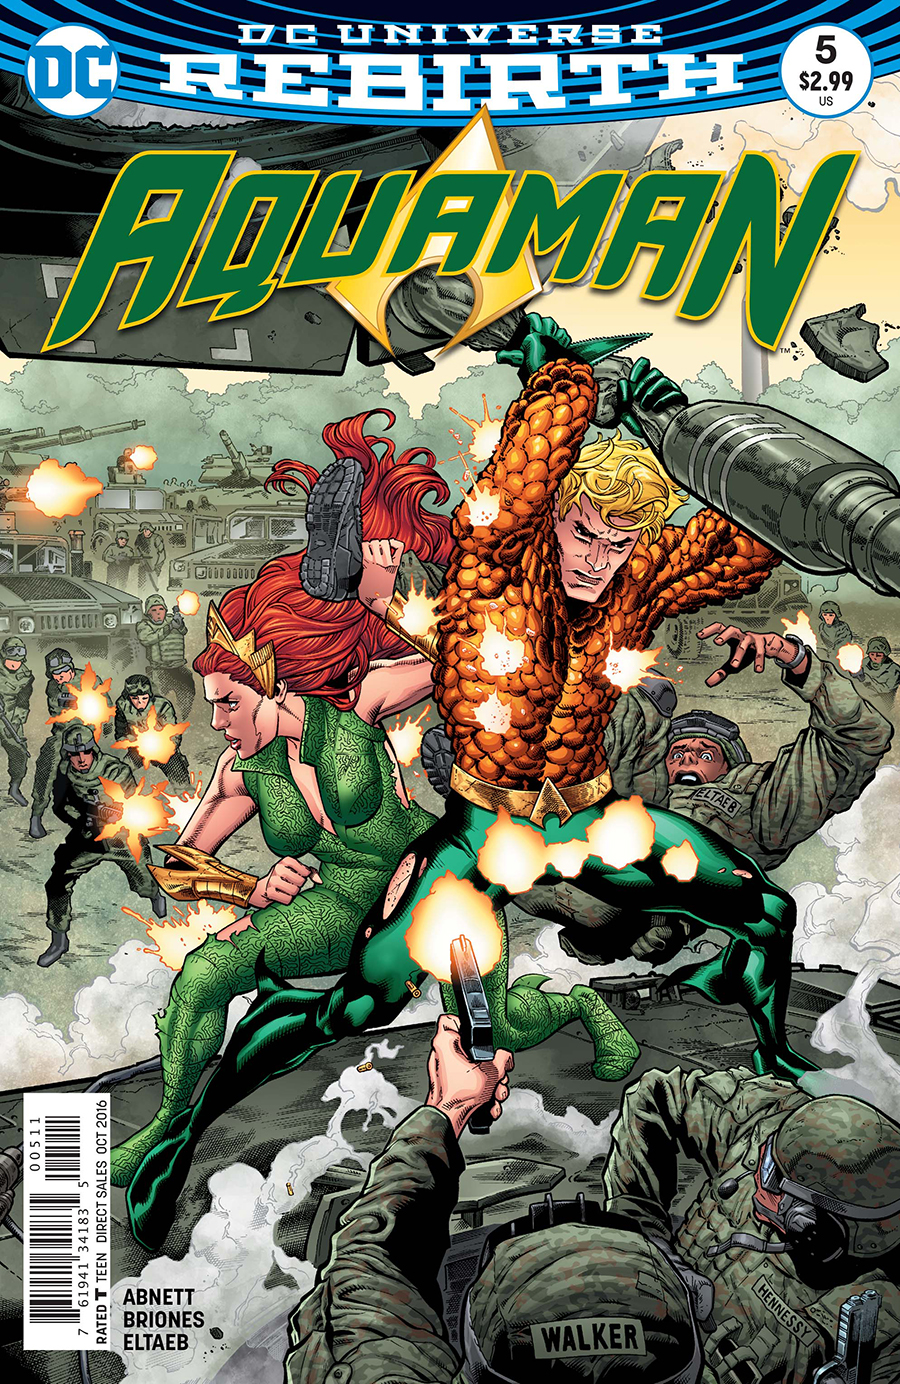 Preview: 'aquaman' # 5 By Dan Abnett, Philippe Briones, And Gabe Eltaeb